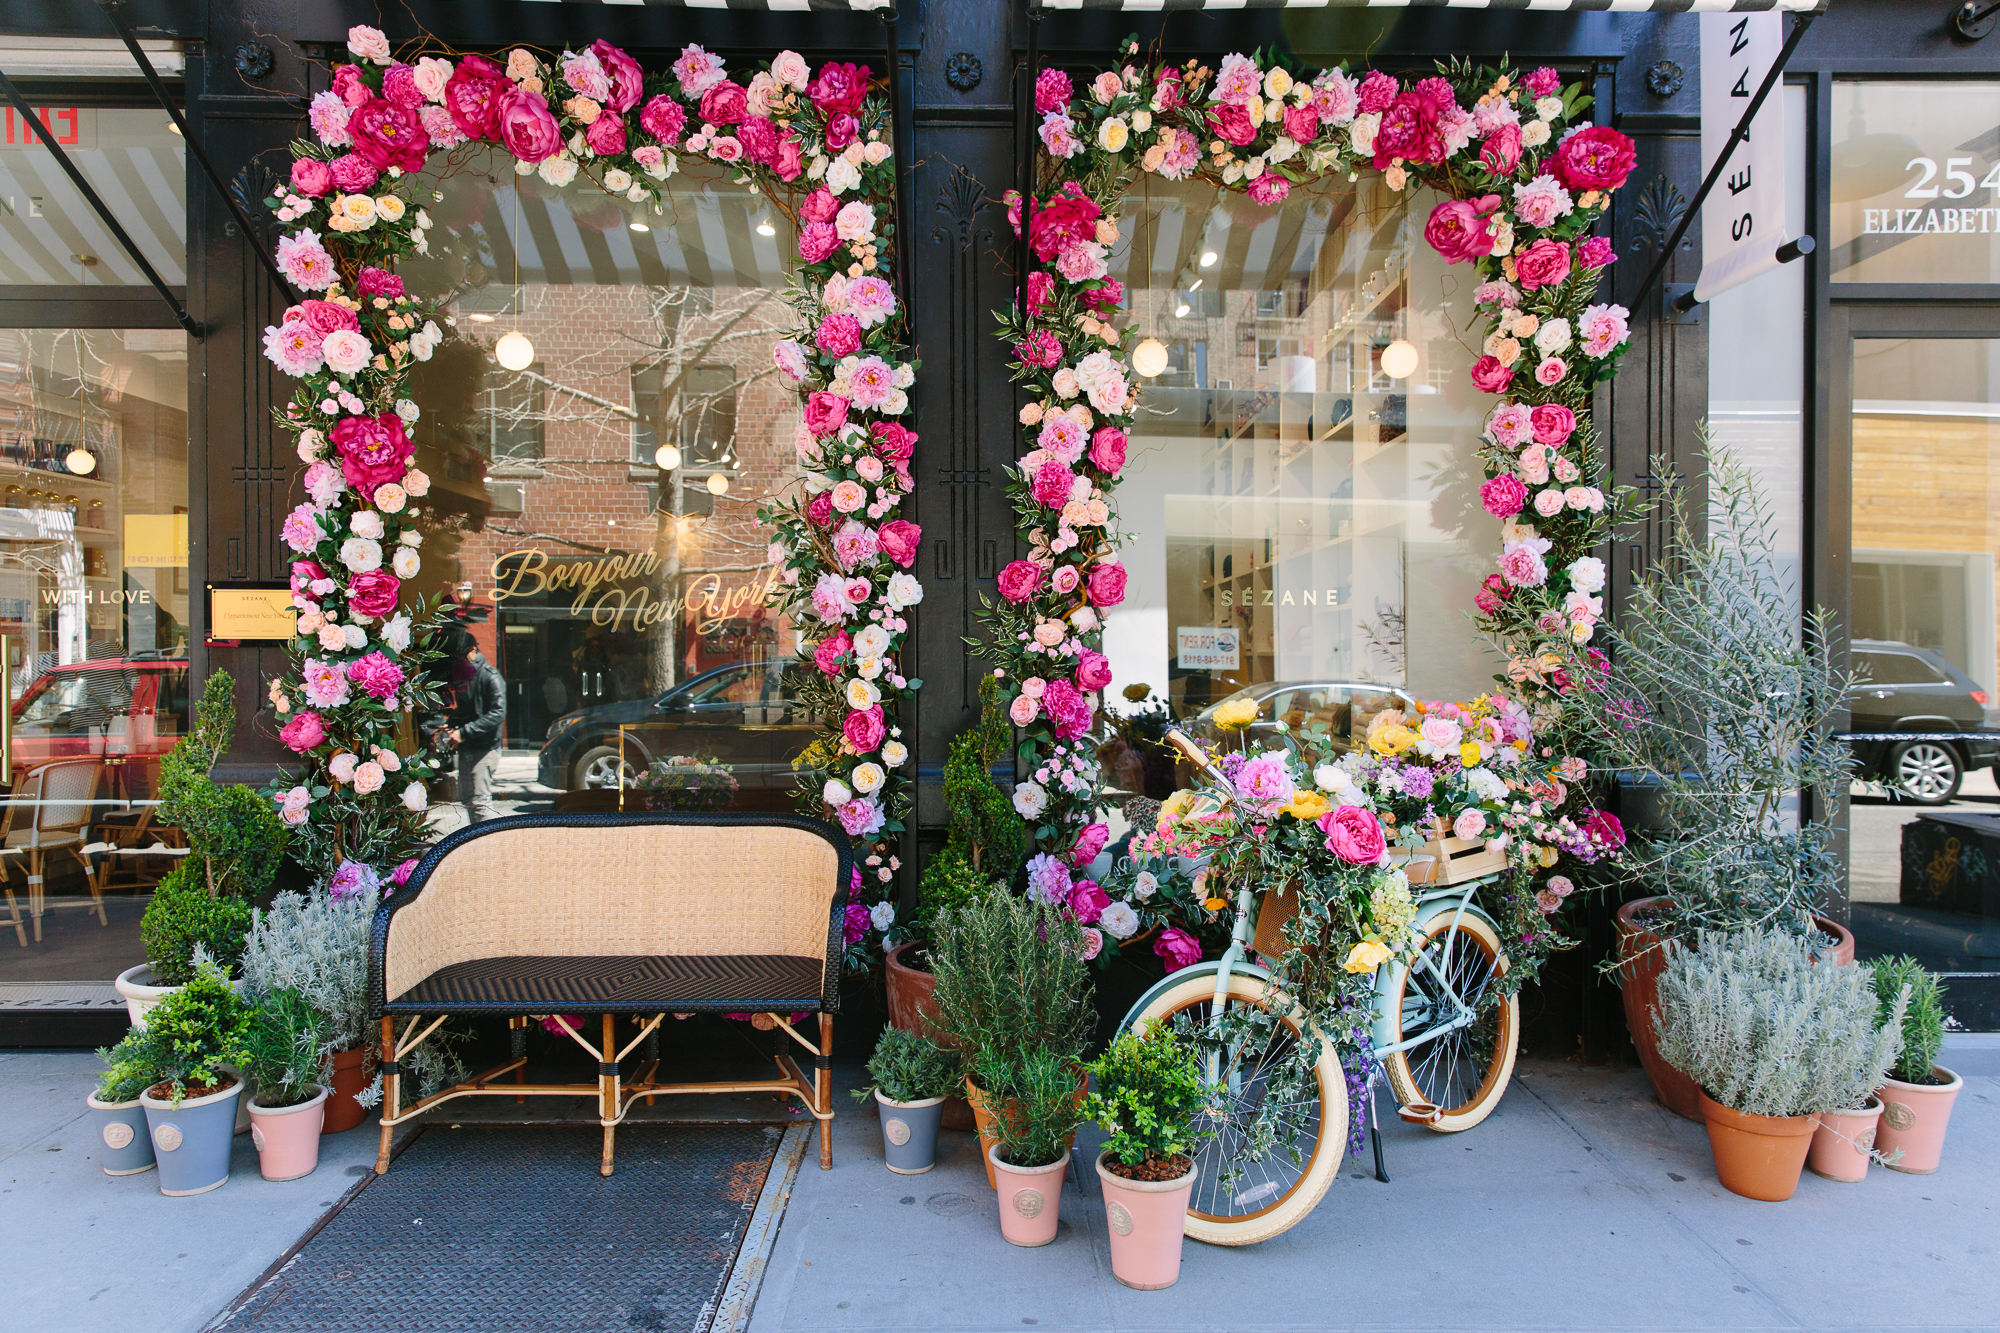 Sezane New York City spring Floratorium storefront